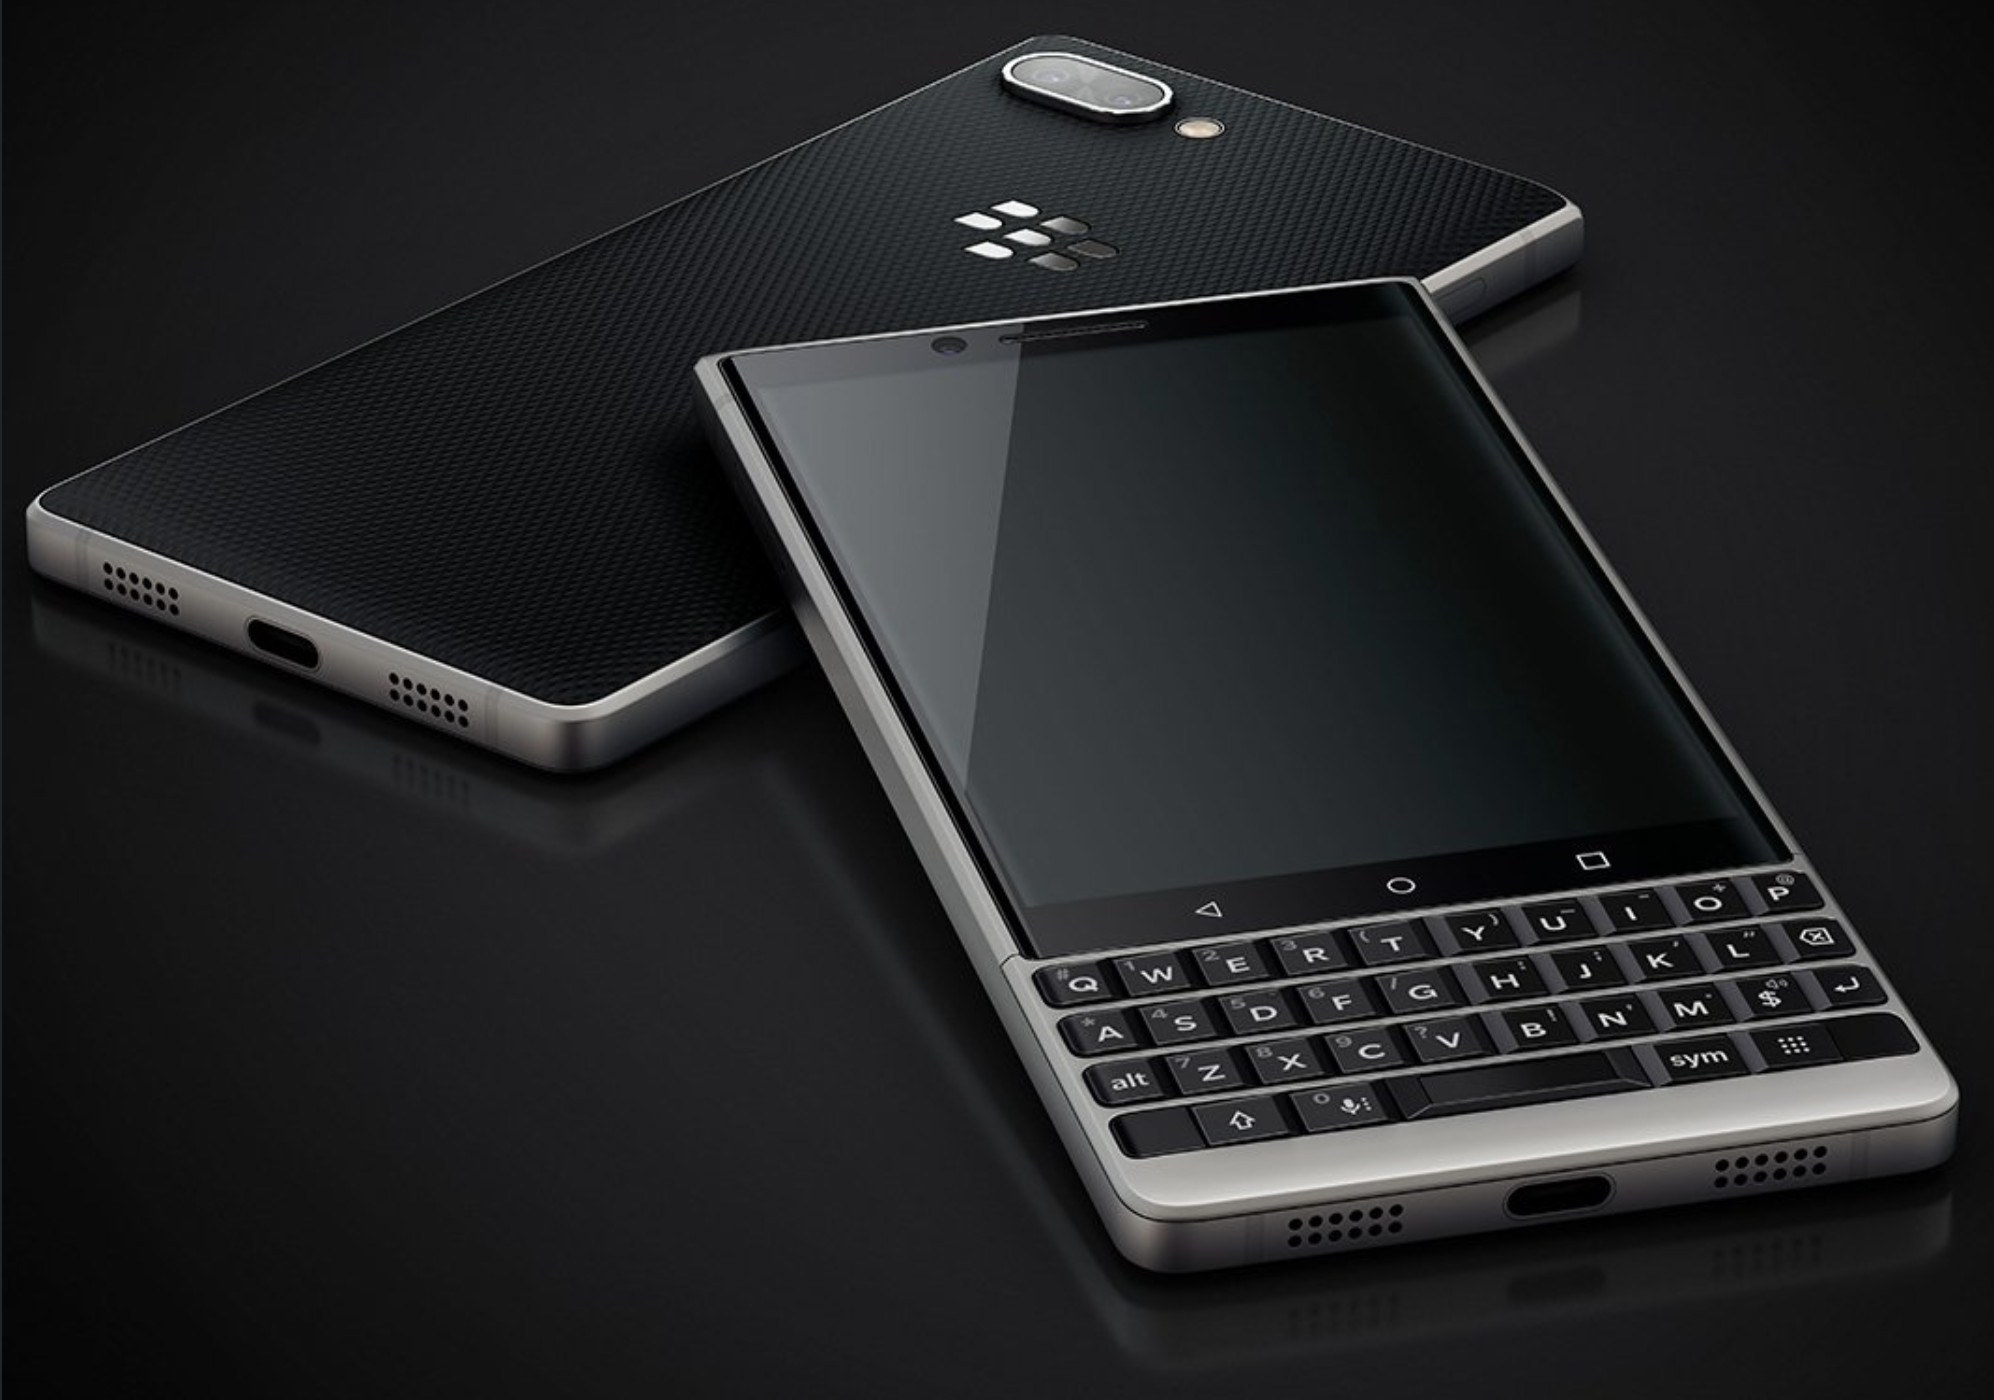 BlackBerry KEY2 Images, Specs and Price Leak Ahead of the Launch